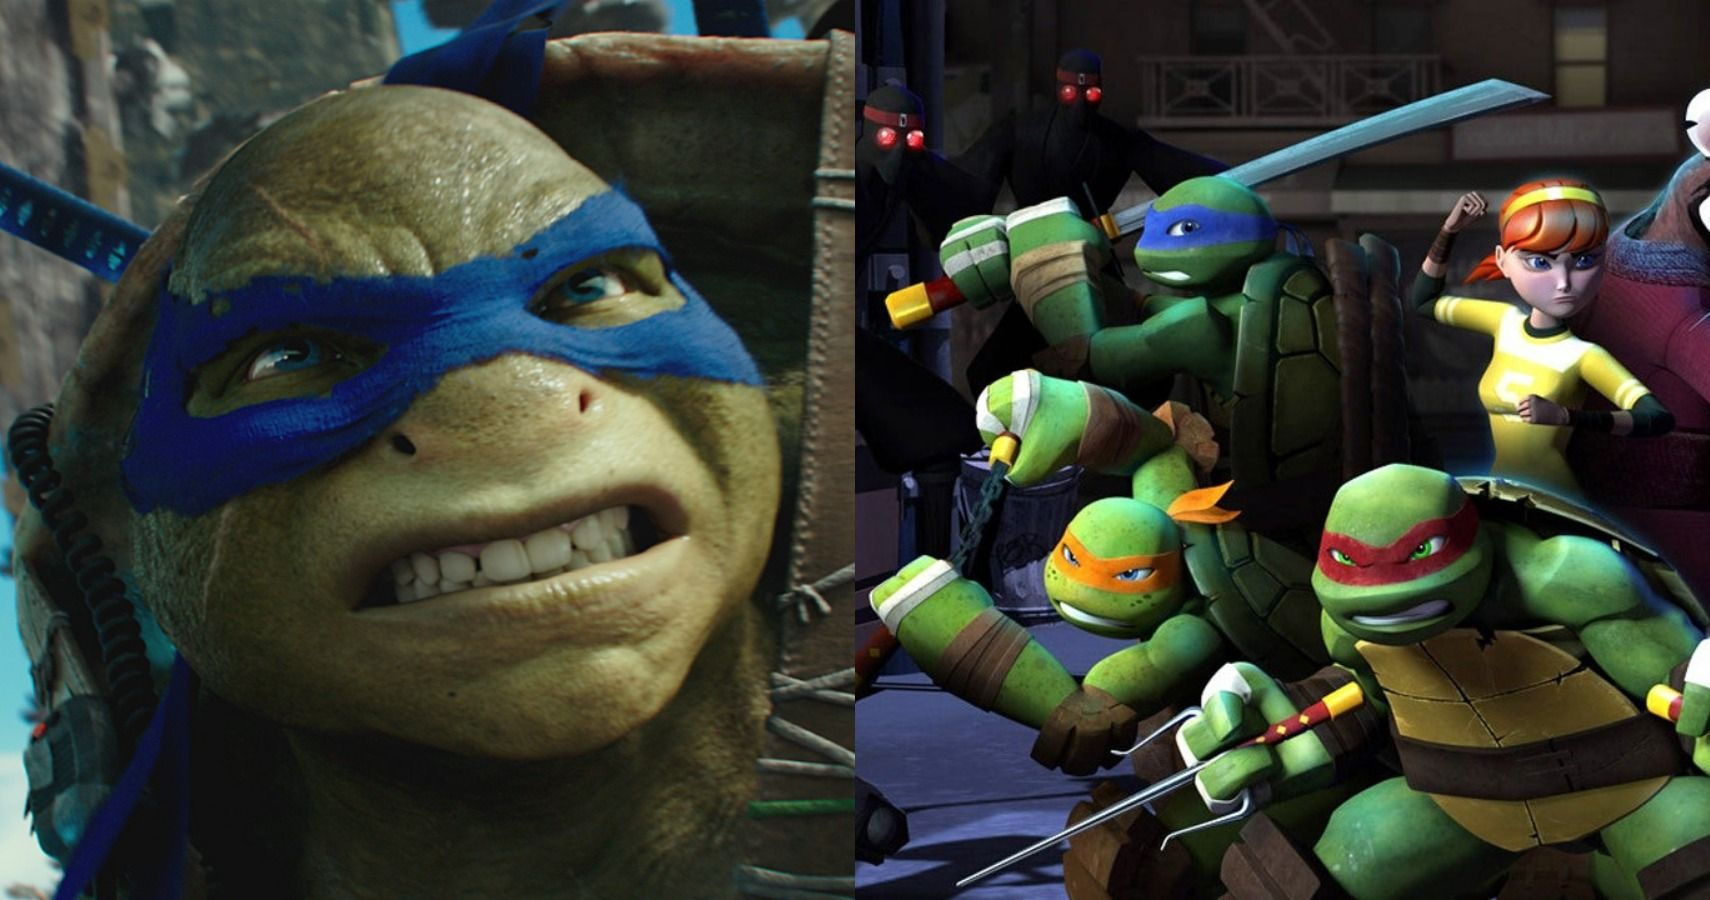 5 Reasons We Re Excited For The Tmnt Reboot 5 Legit Concerns